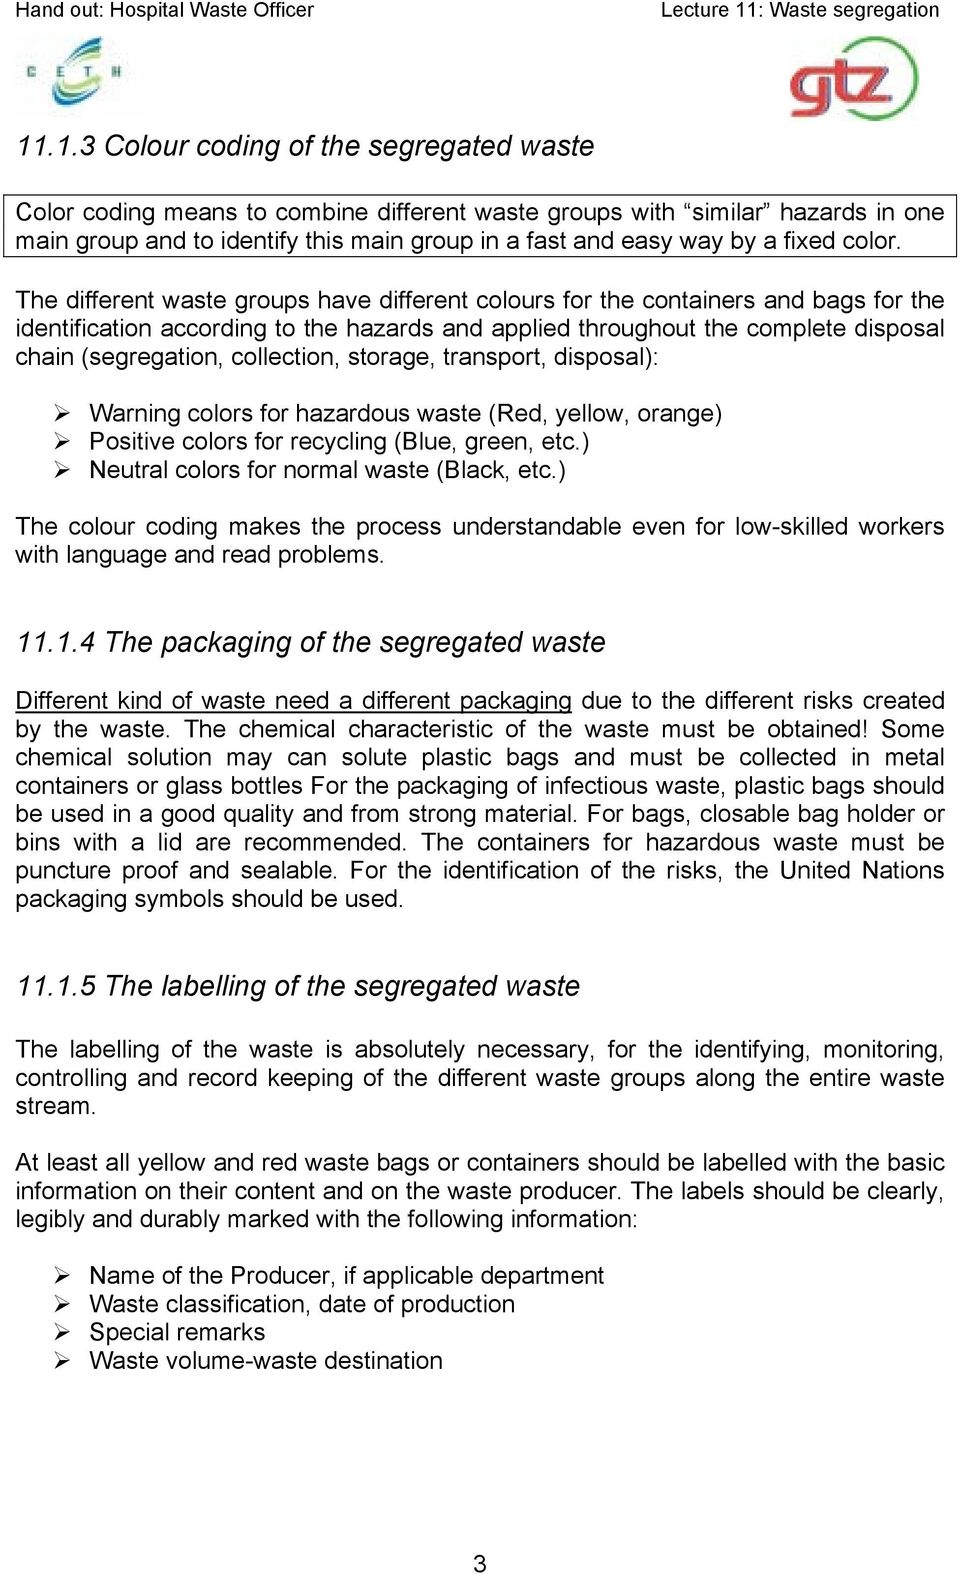 The different waste groups have different colours for the containers and bags for the identification according to the hazards and applied throughout the complete disposal chain (segregation,